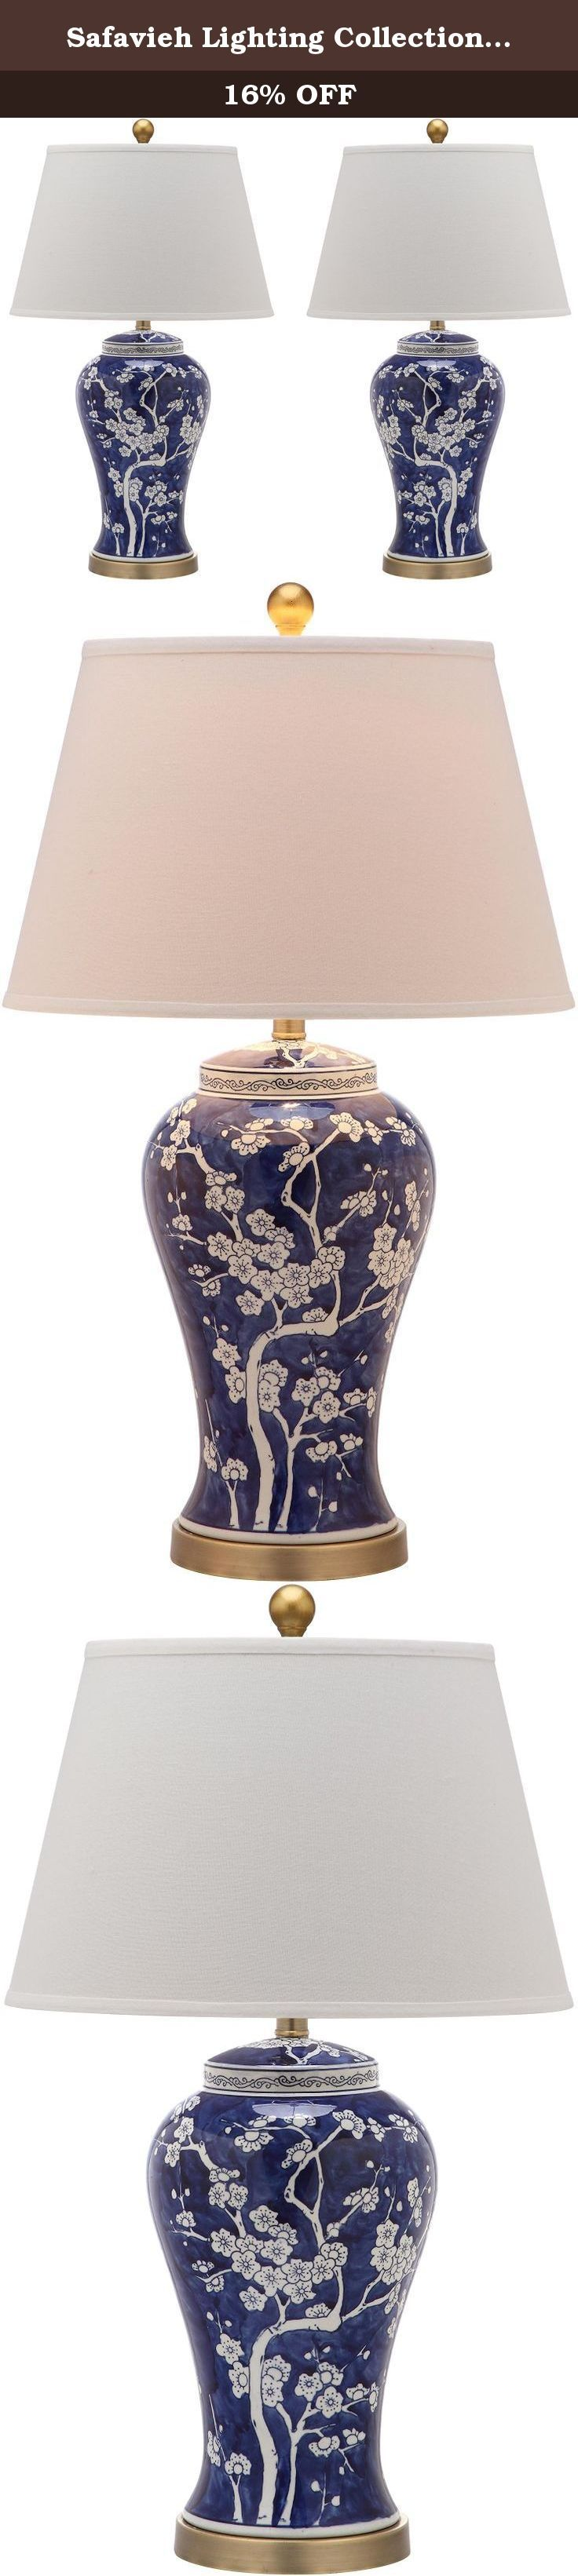 Safavieh Lighting Collection Spring Blossom Multi Floral 29-inch Table Lamp (Set of 2). Wandering branches bursting with white flower buds adorn the classically-styled navy blue spring blossom table lamp. True to its roots in Asian design, this elegant urn-shaped lamp is crafted of ceramic with white linen shade, gilded finial and accents.